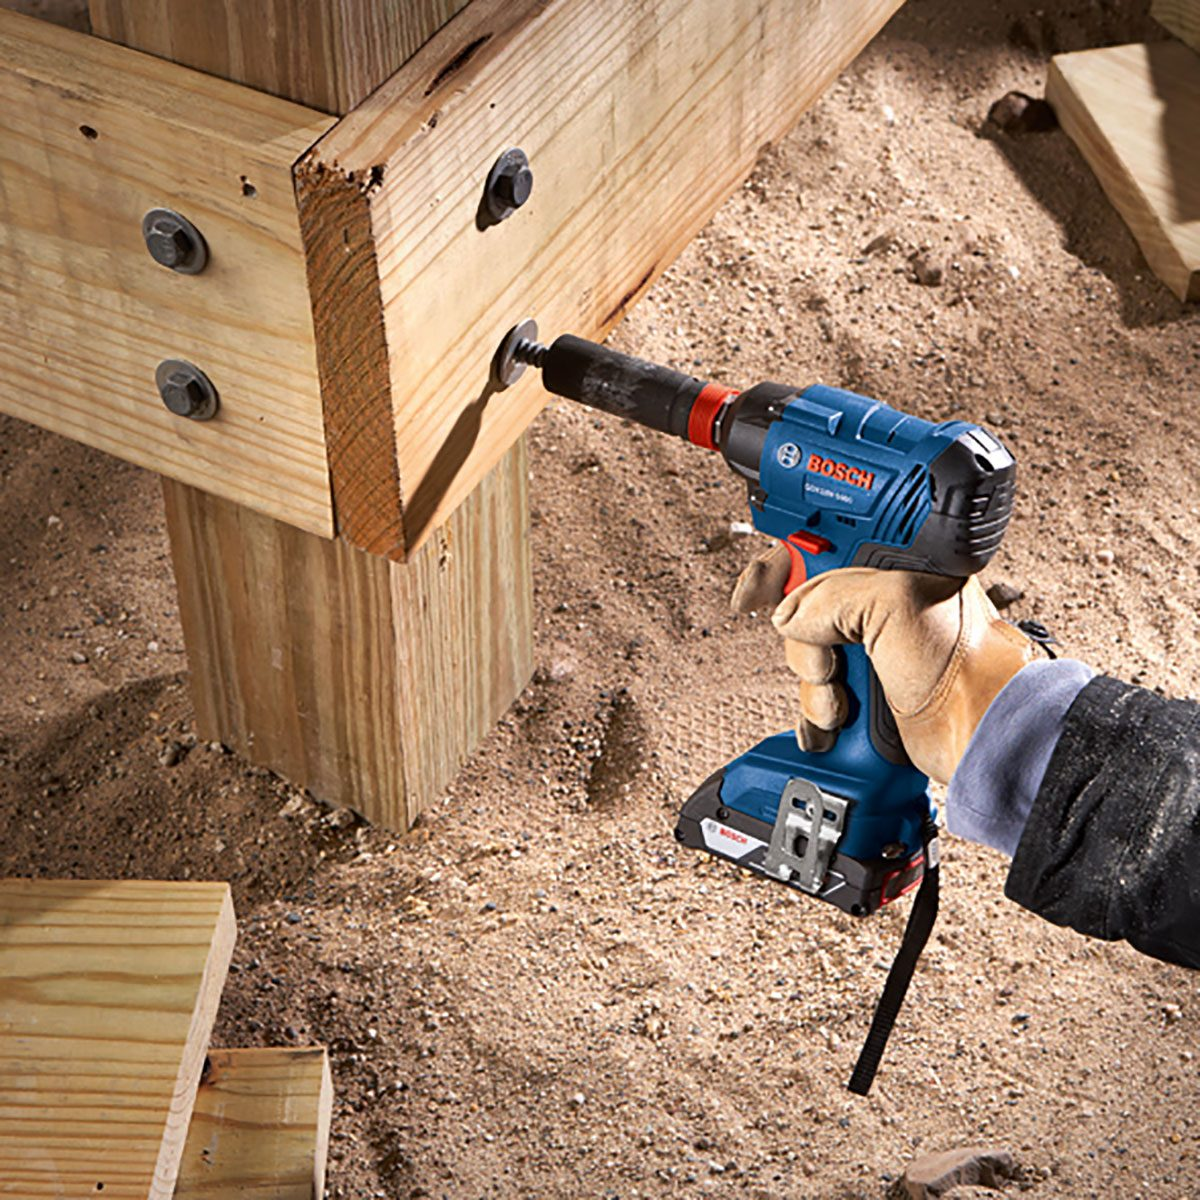 Using a Bosch 2-in-1 Driver to tighten a bolt | Construction Pro Tips